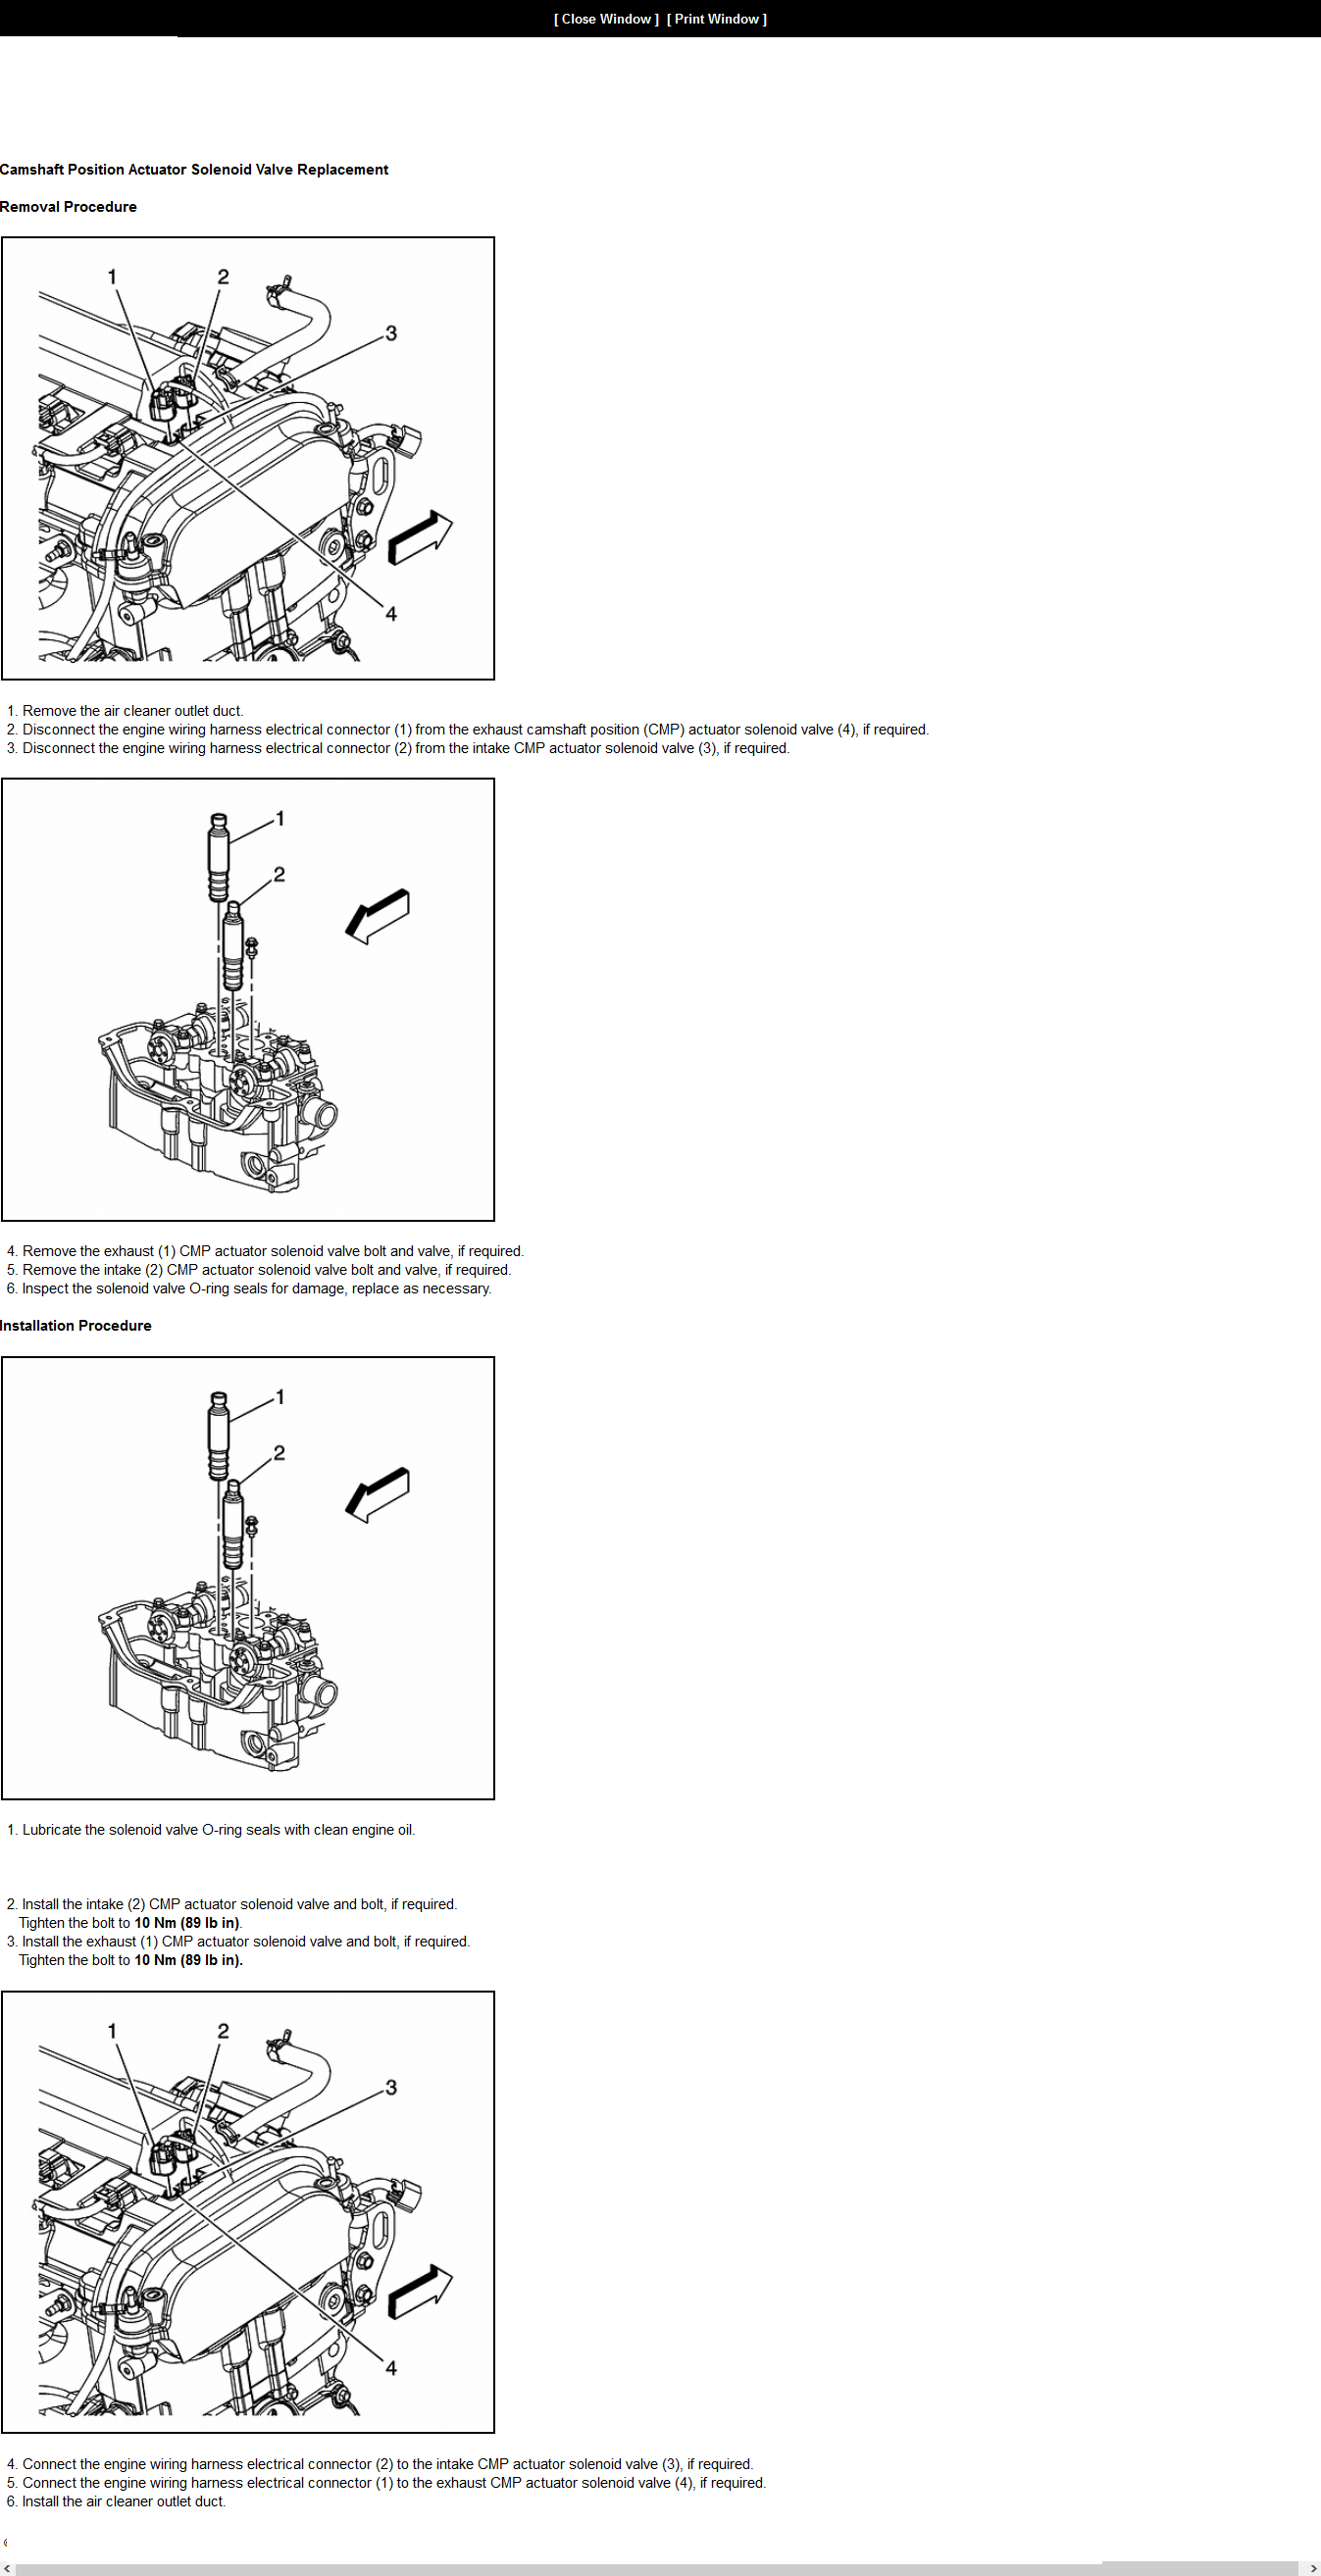 2009 malibu exhaust timing solenoid location with. Black Bedroom Furniture Sets. Home Design Ideas